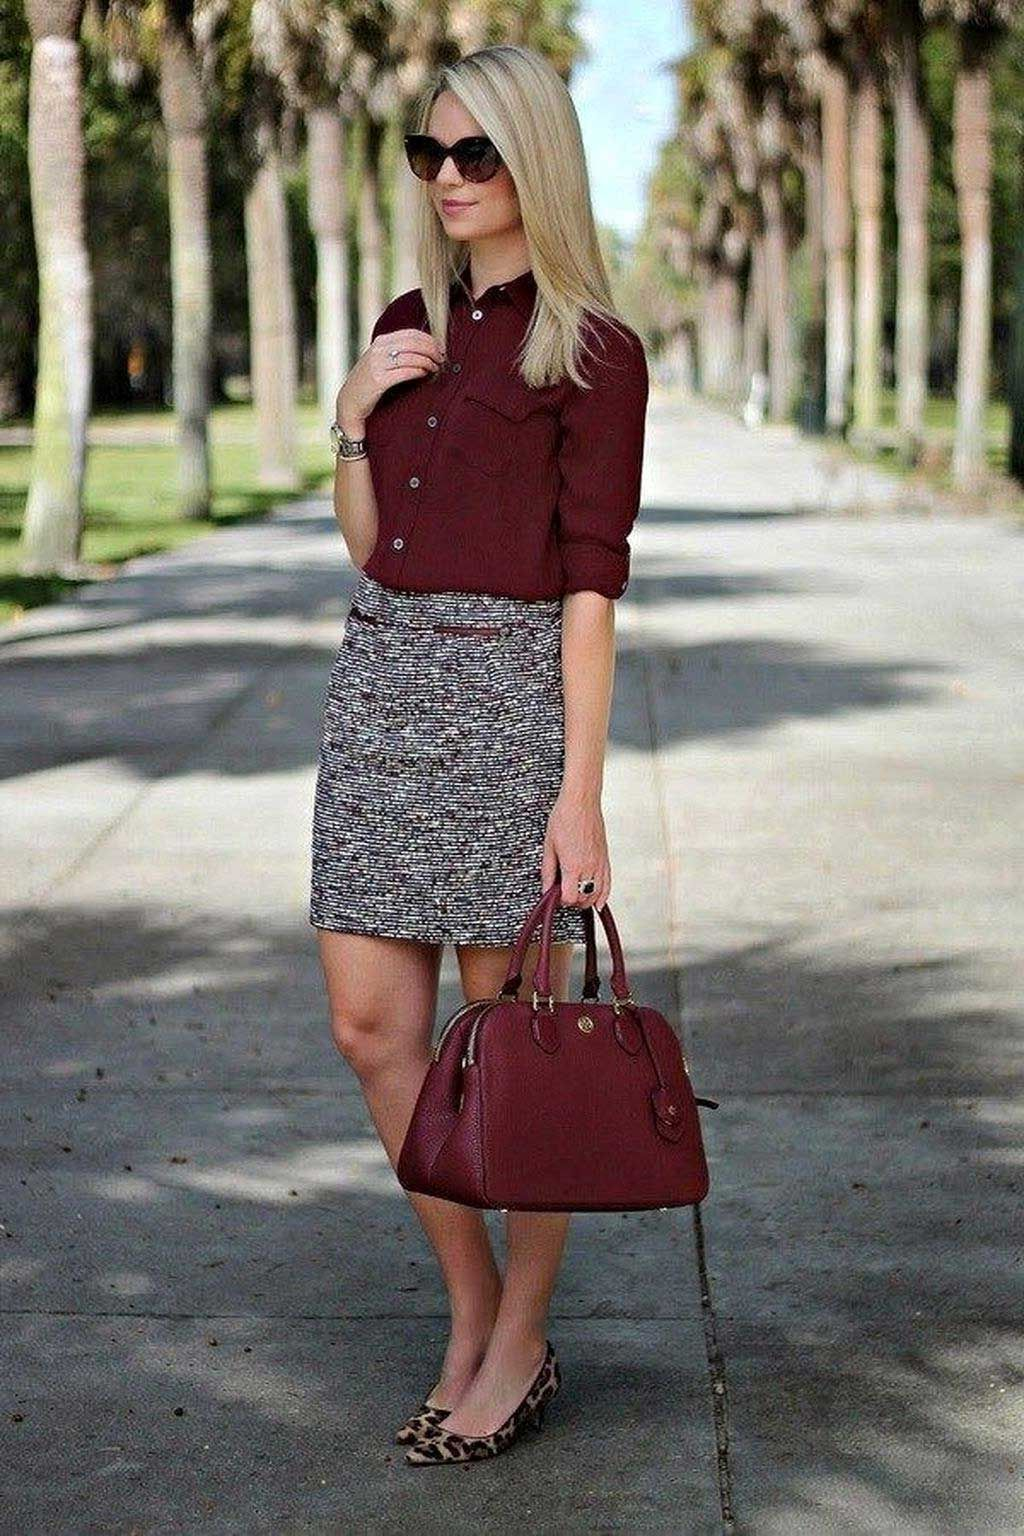 45 Top summer work outfits ideas for women01 - Best Home Design Ideas